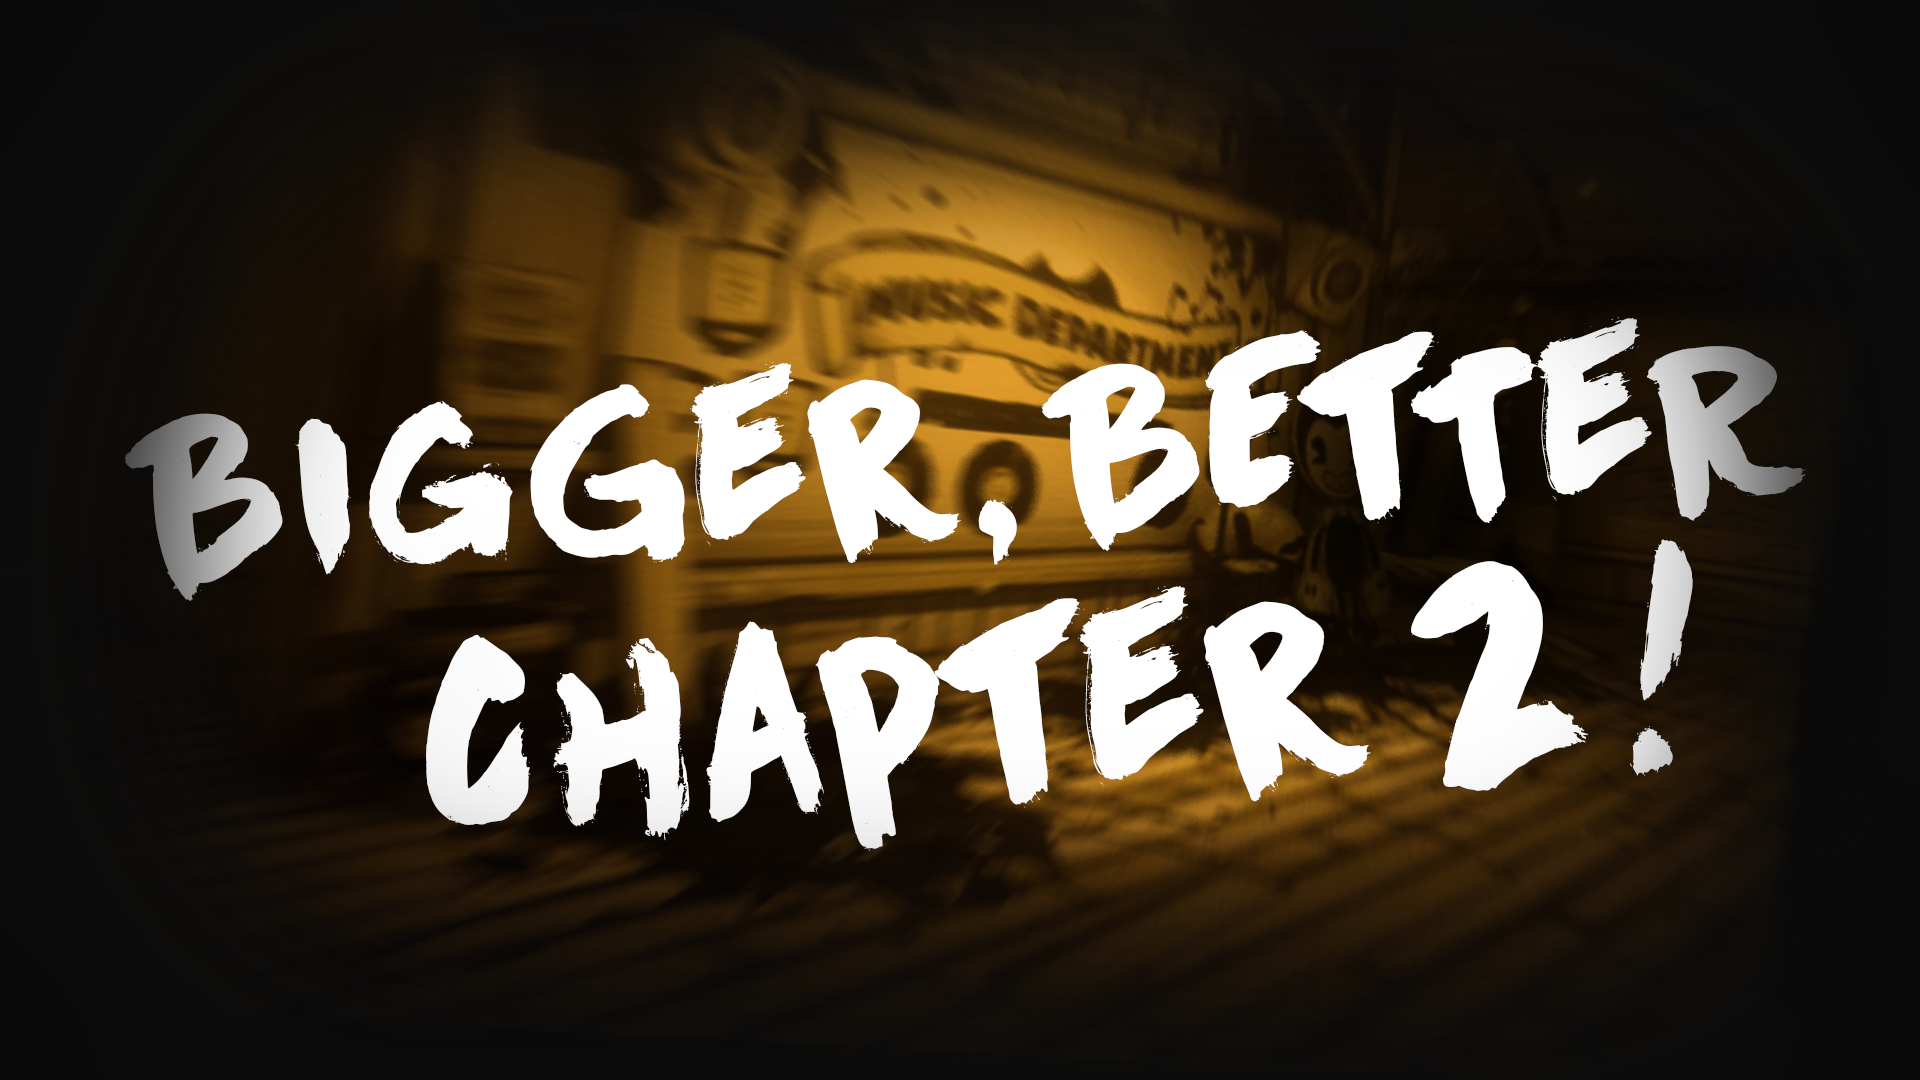 Chapter 2 HUGE REMASTER COMING SOON!!!